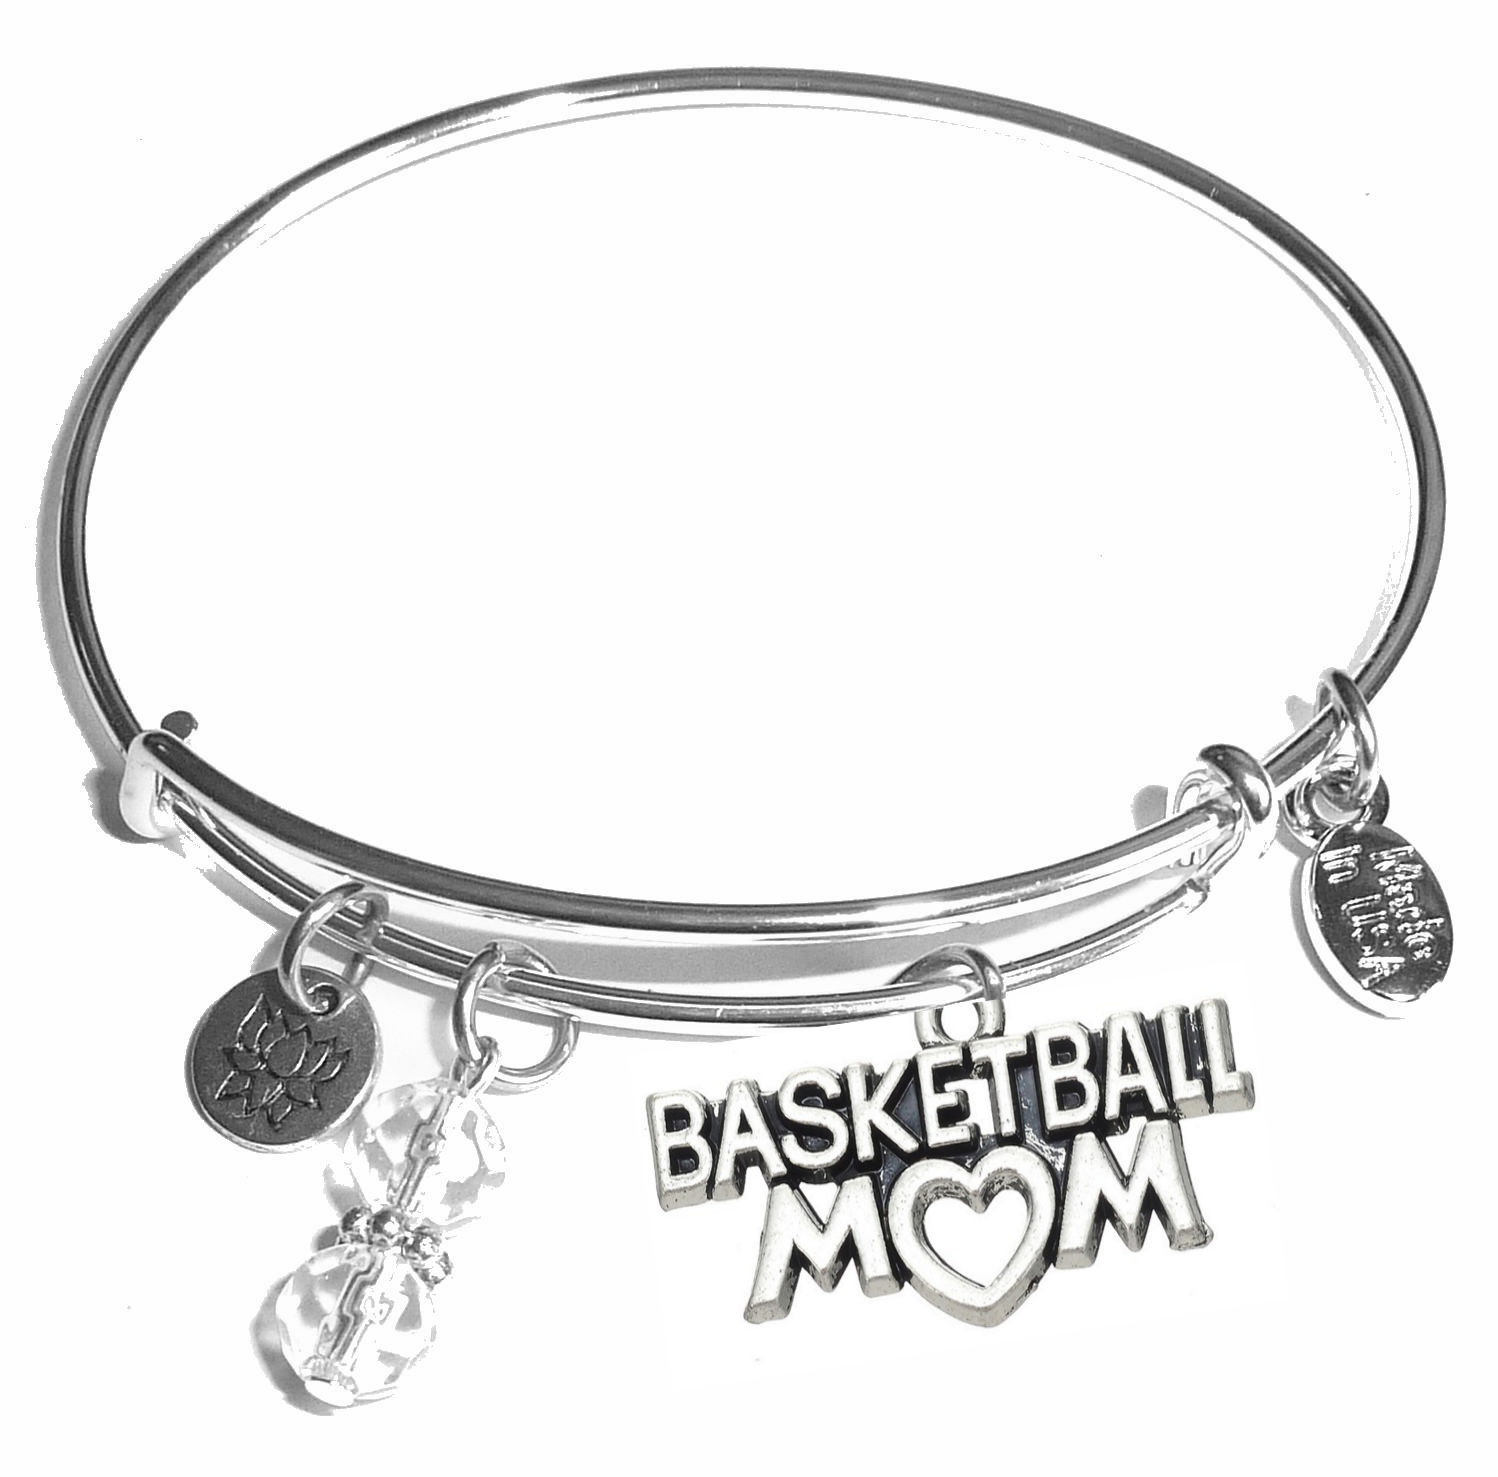 charms bracelets and bangles crochet women lover charm crocheting for products bracelet silver bangle mom baseball